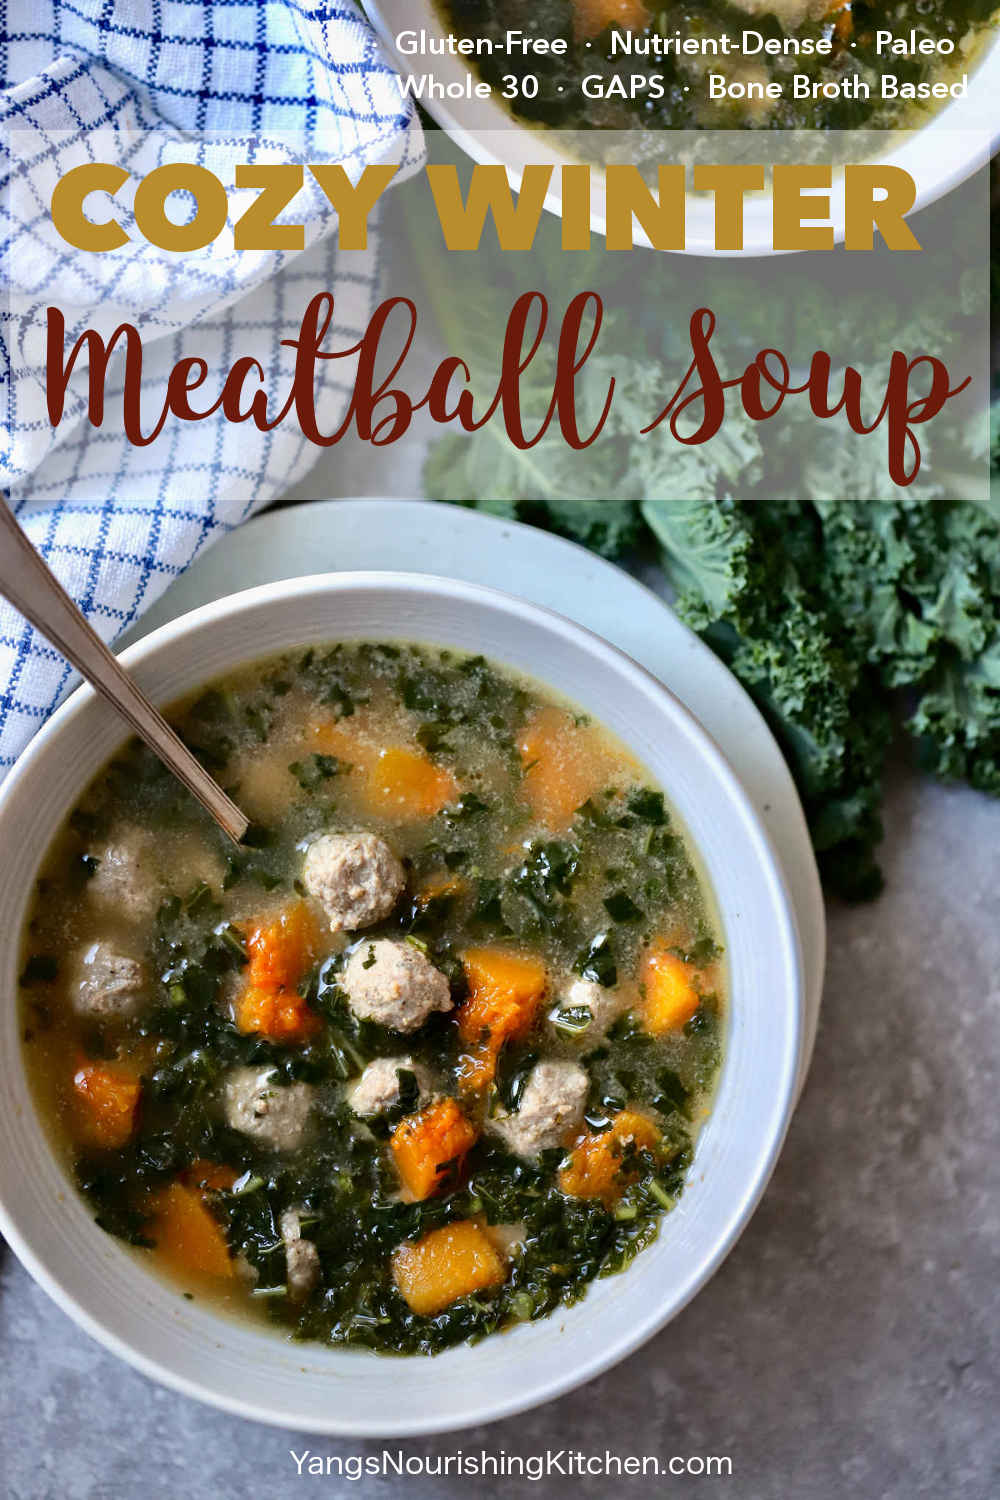 Cozy Winter Meatball Soup (Gluten-Free, Paleo, Whole 30)